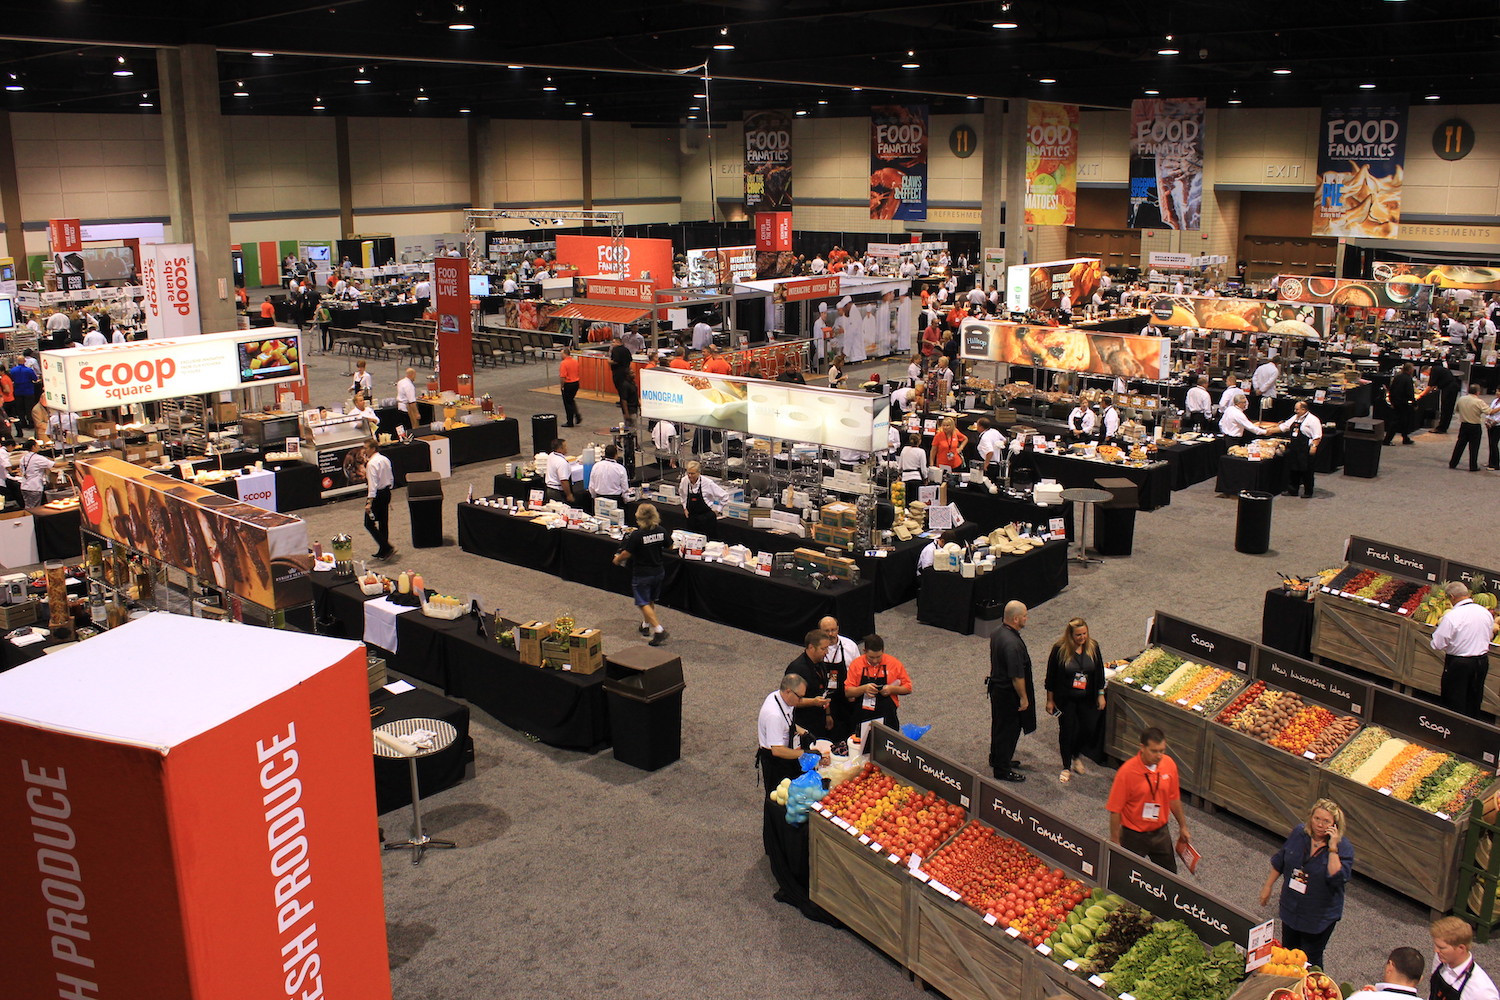 There is plenty for the Food Fanatics Trade Show within the columnless Exhibition Halls of the Overland Park Convention Center.